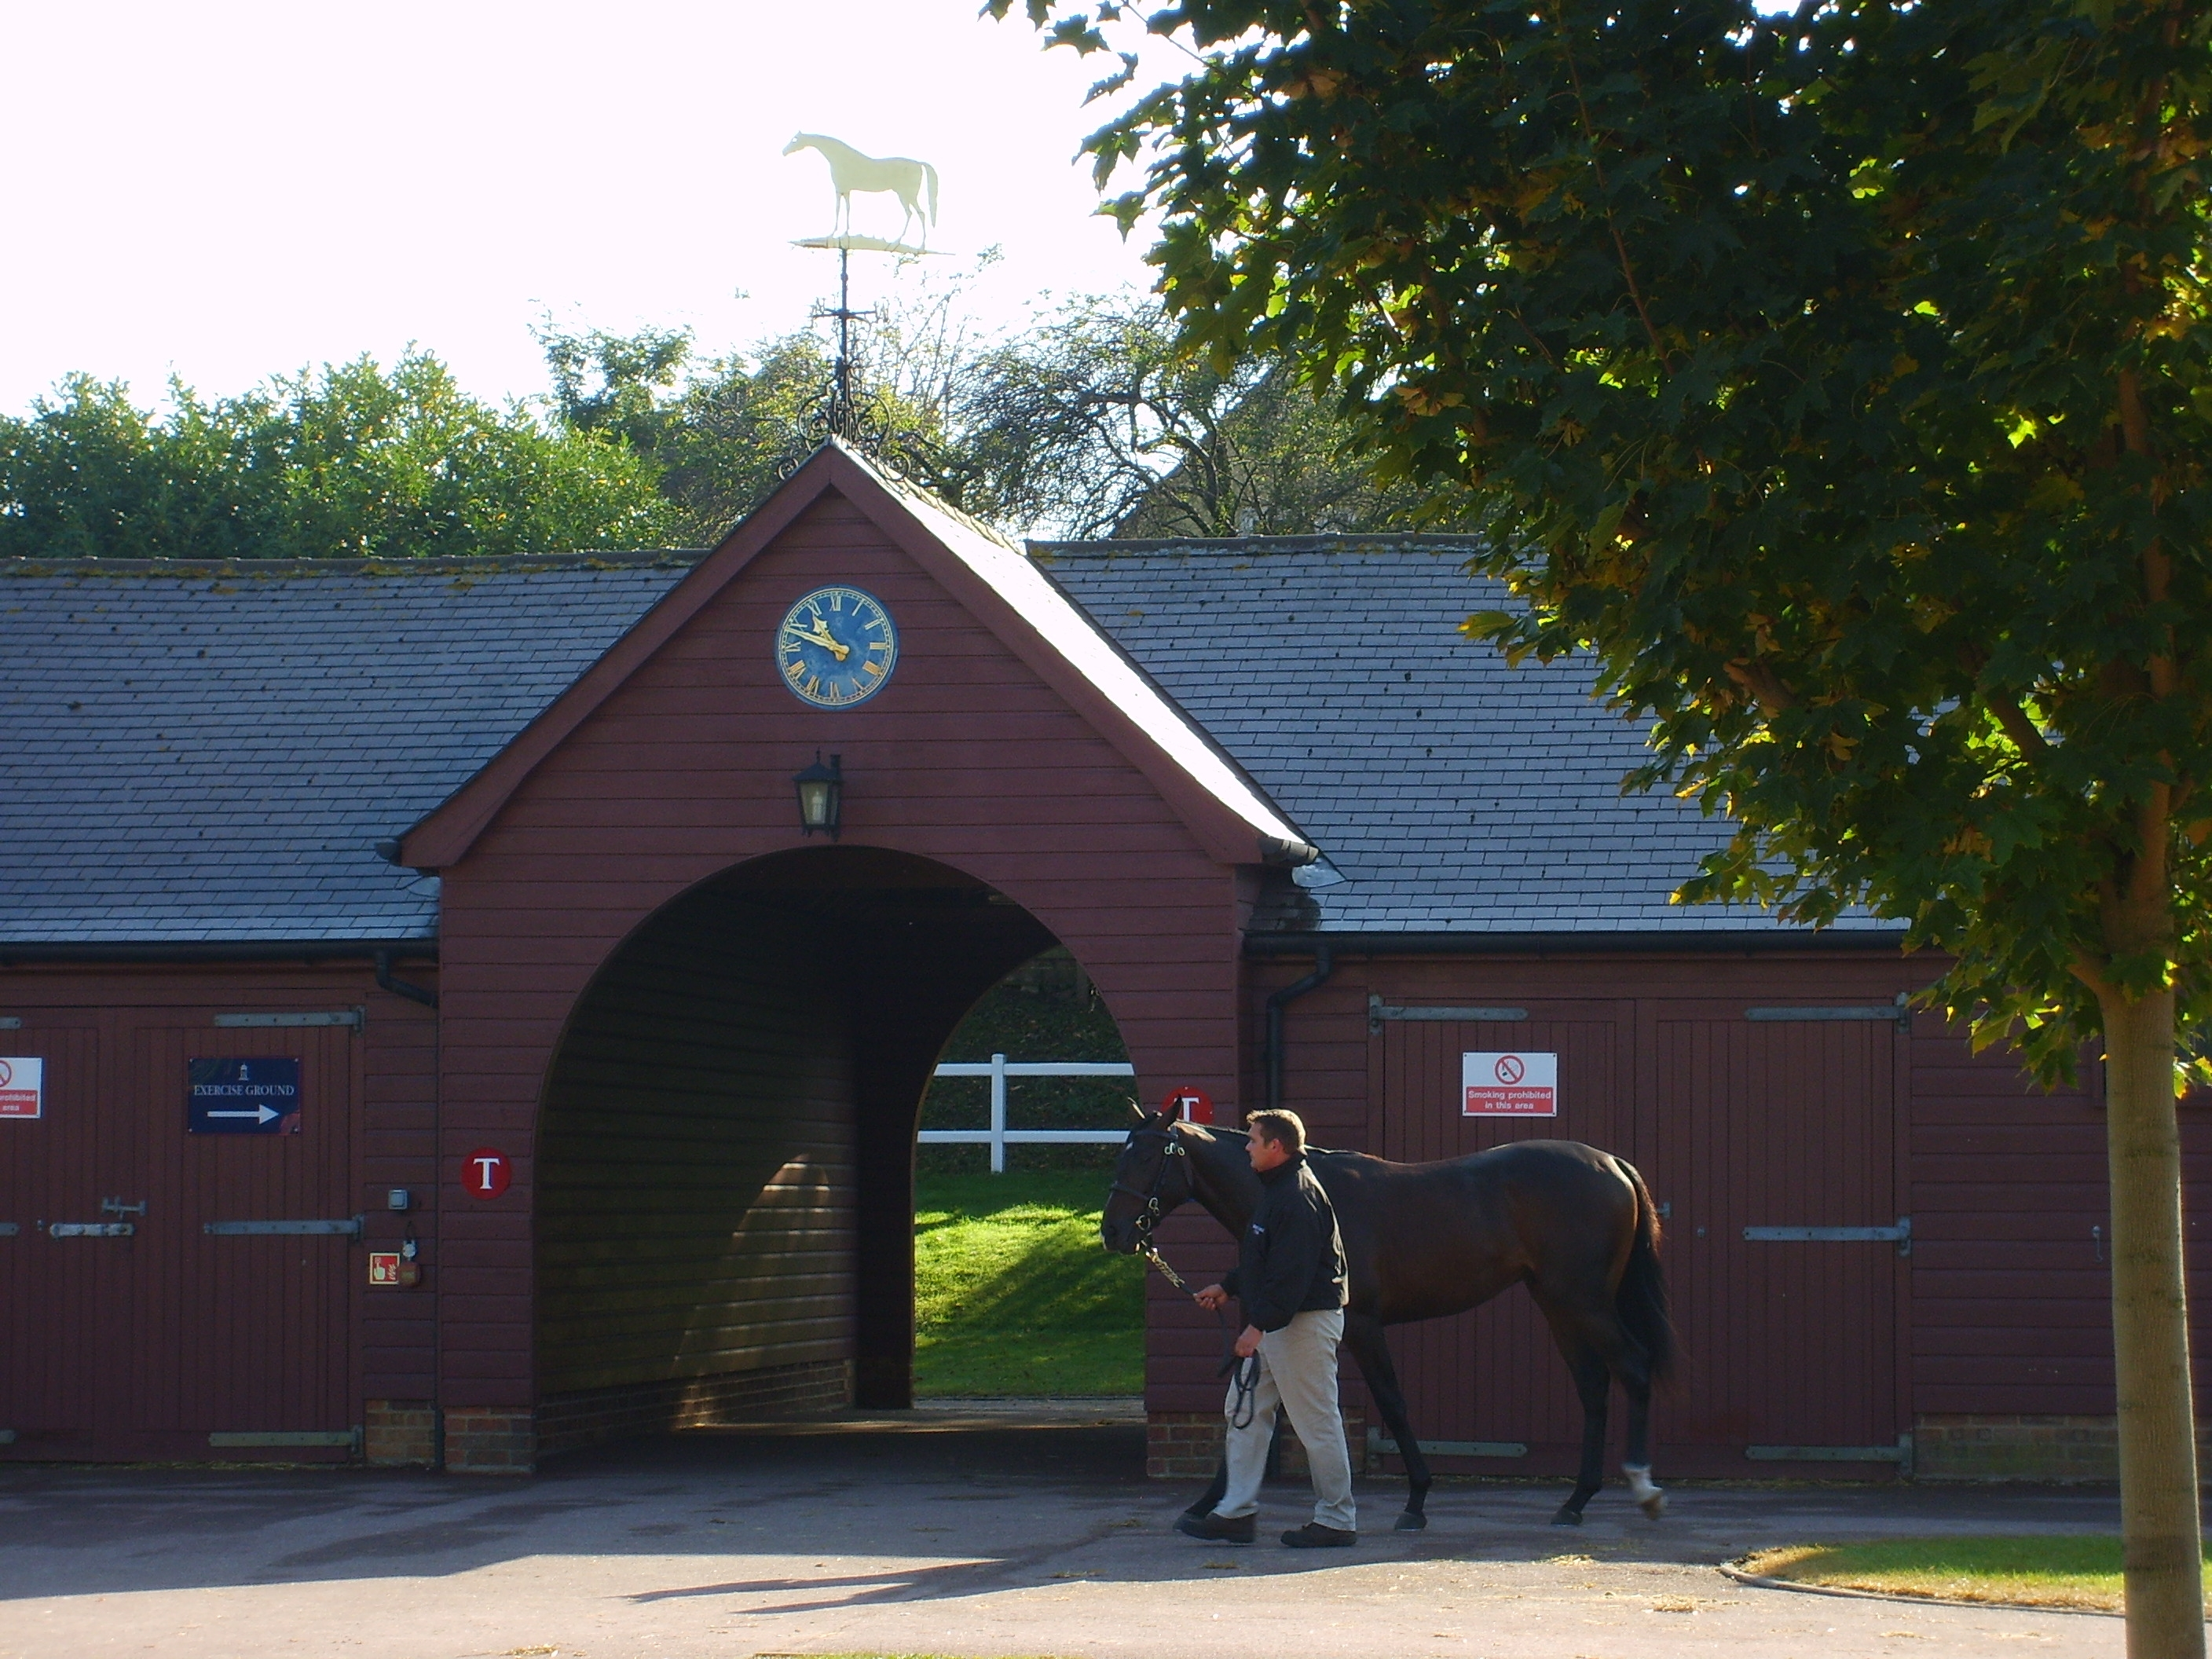 One of the Tattersalls sale barns, occupied by the Highclere agency's consignment.